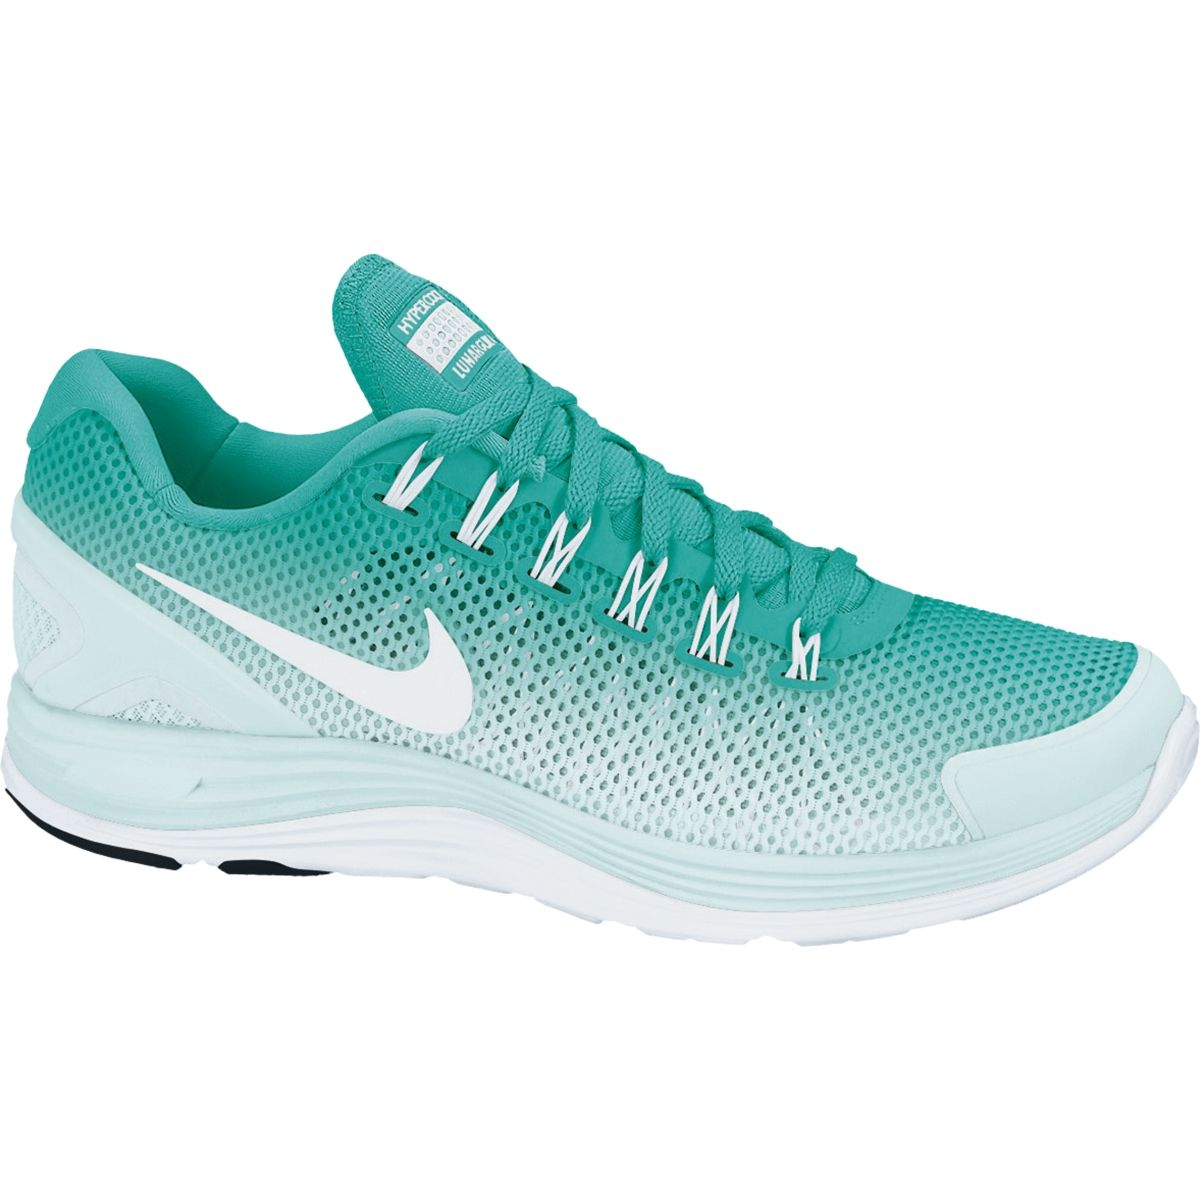 Nike Lunar Glide + 4 Breathe Running Shoes Womens - SportChek.ca